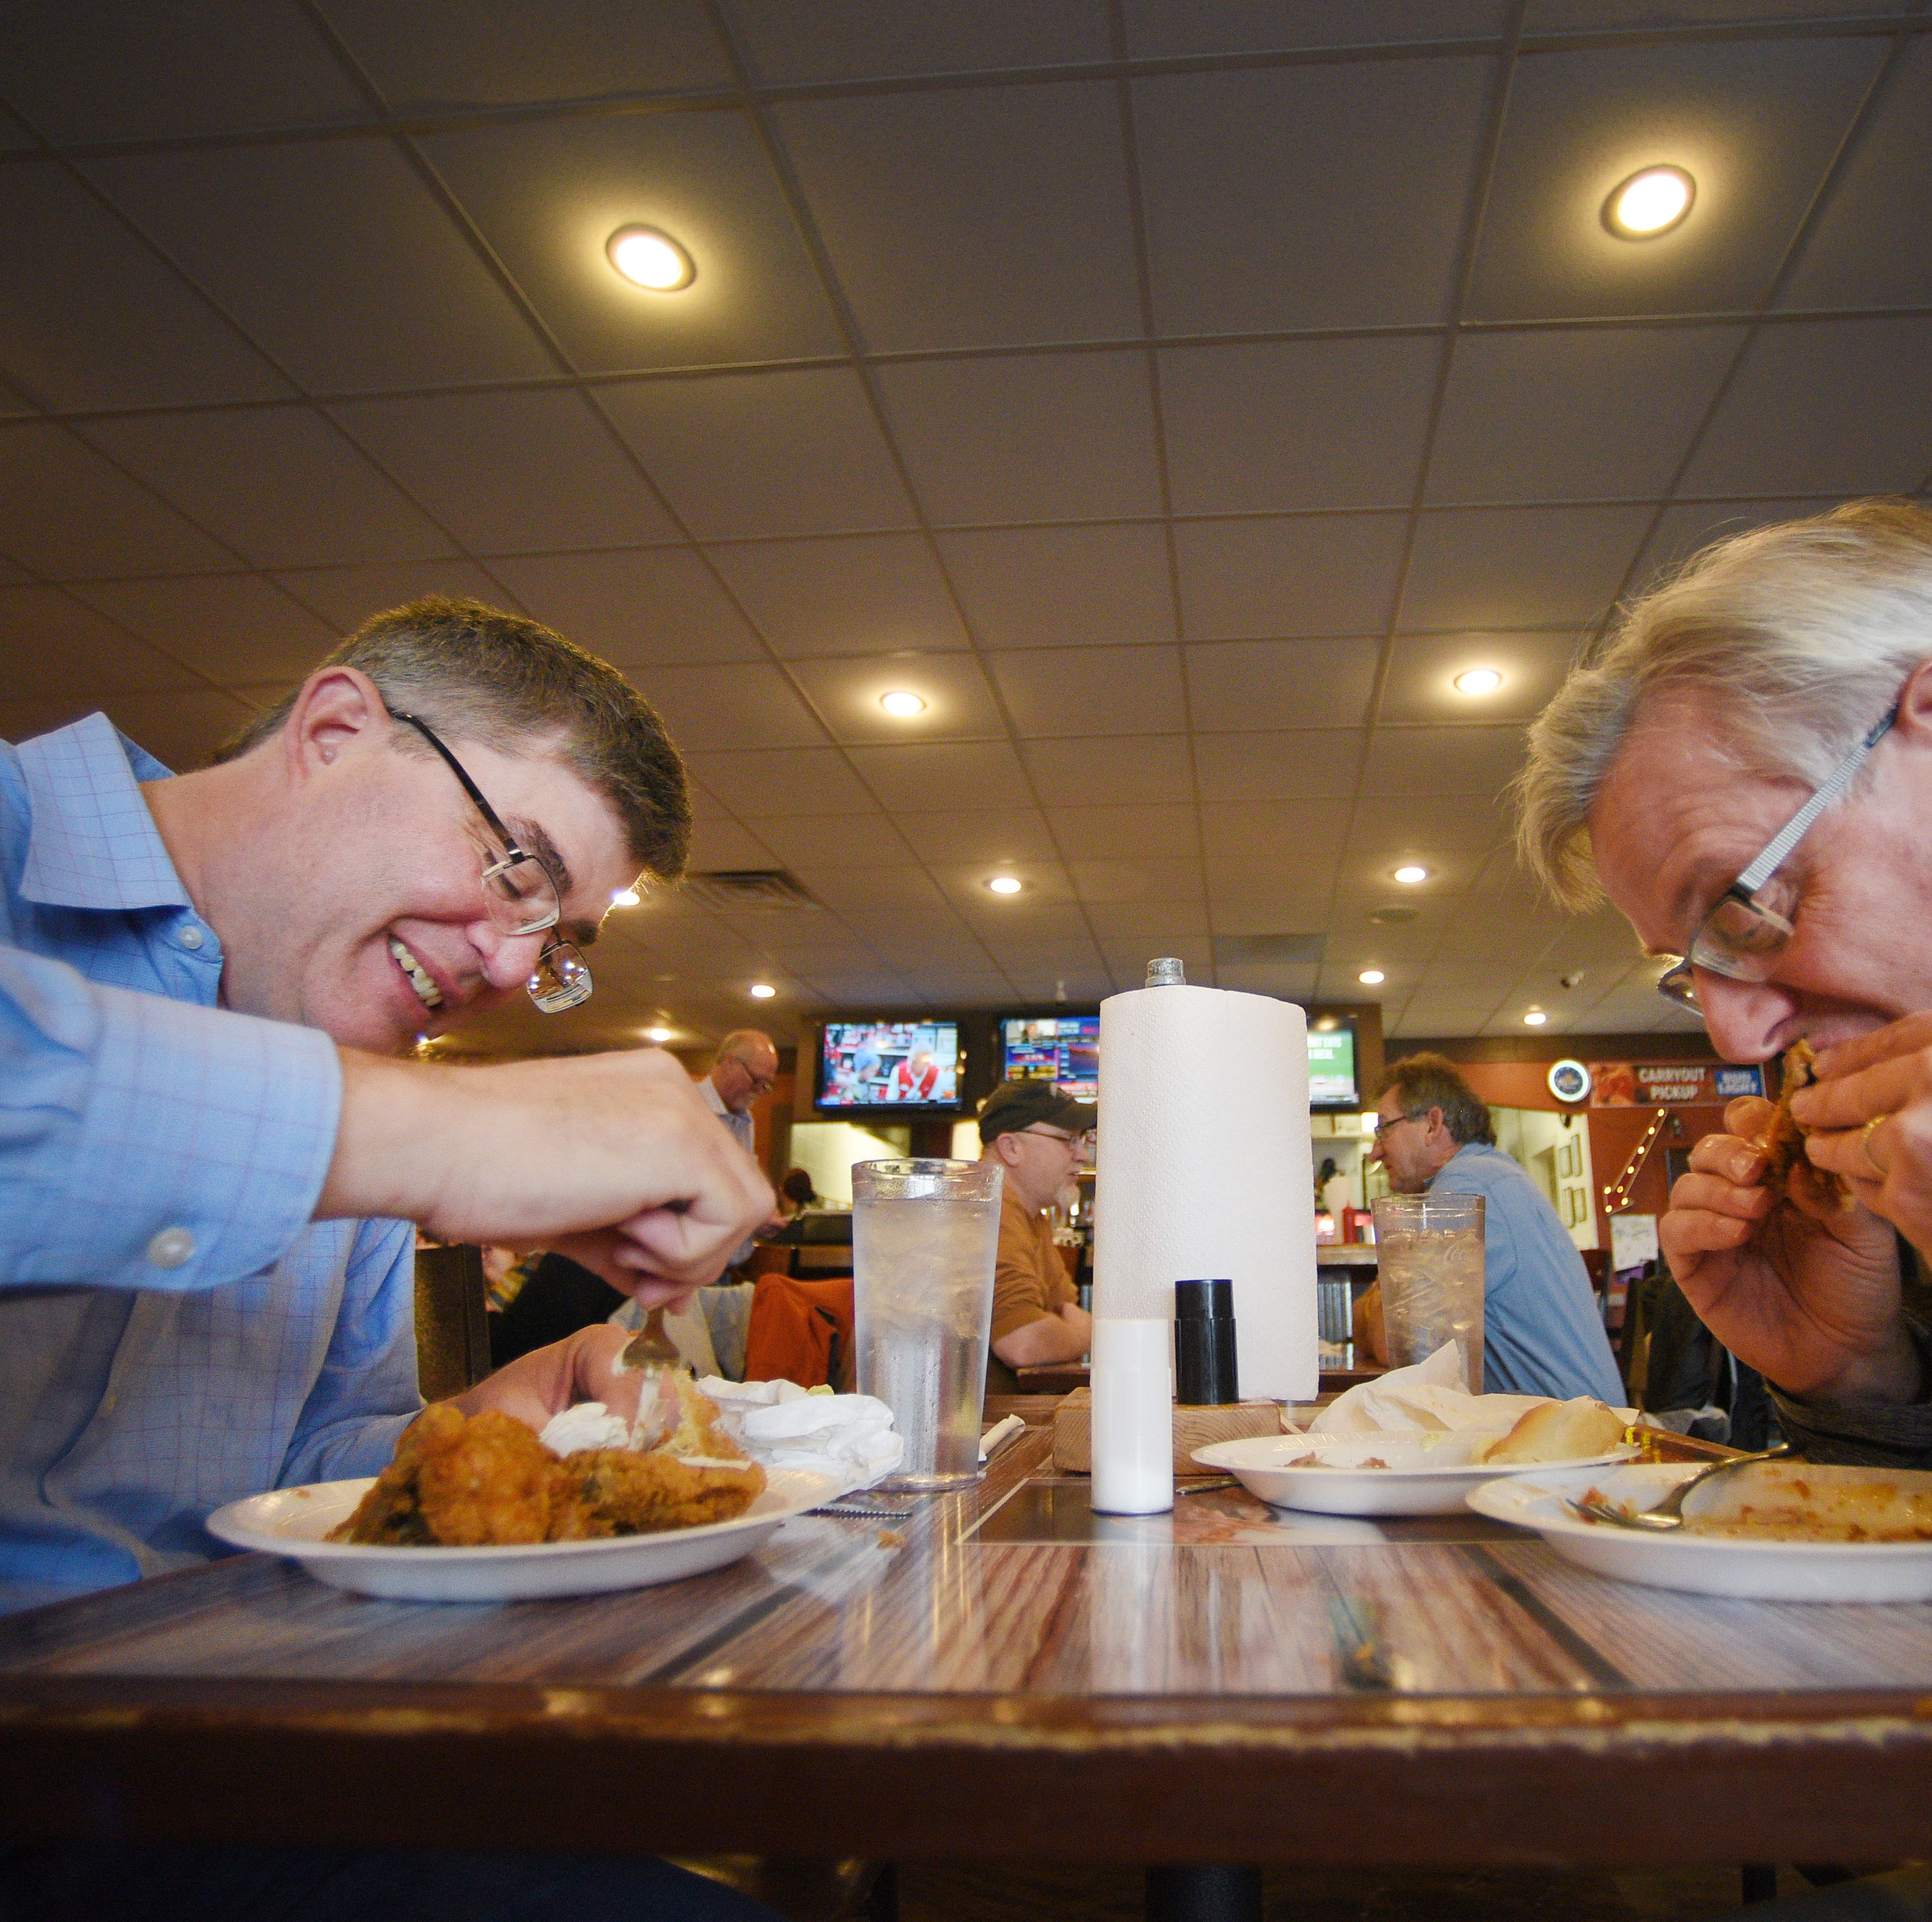 The Keg died. But Sioux Falls' love for its fried chicken brought it back to life.